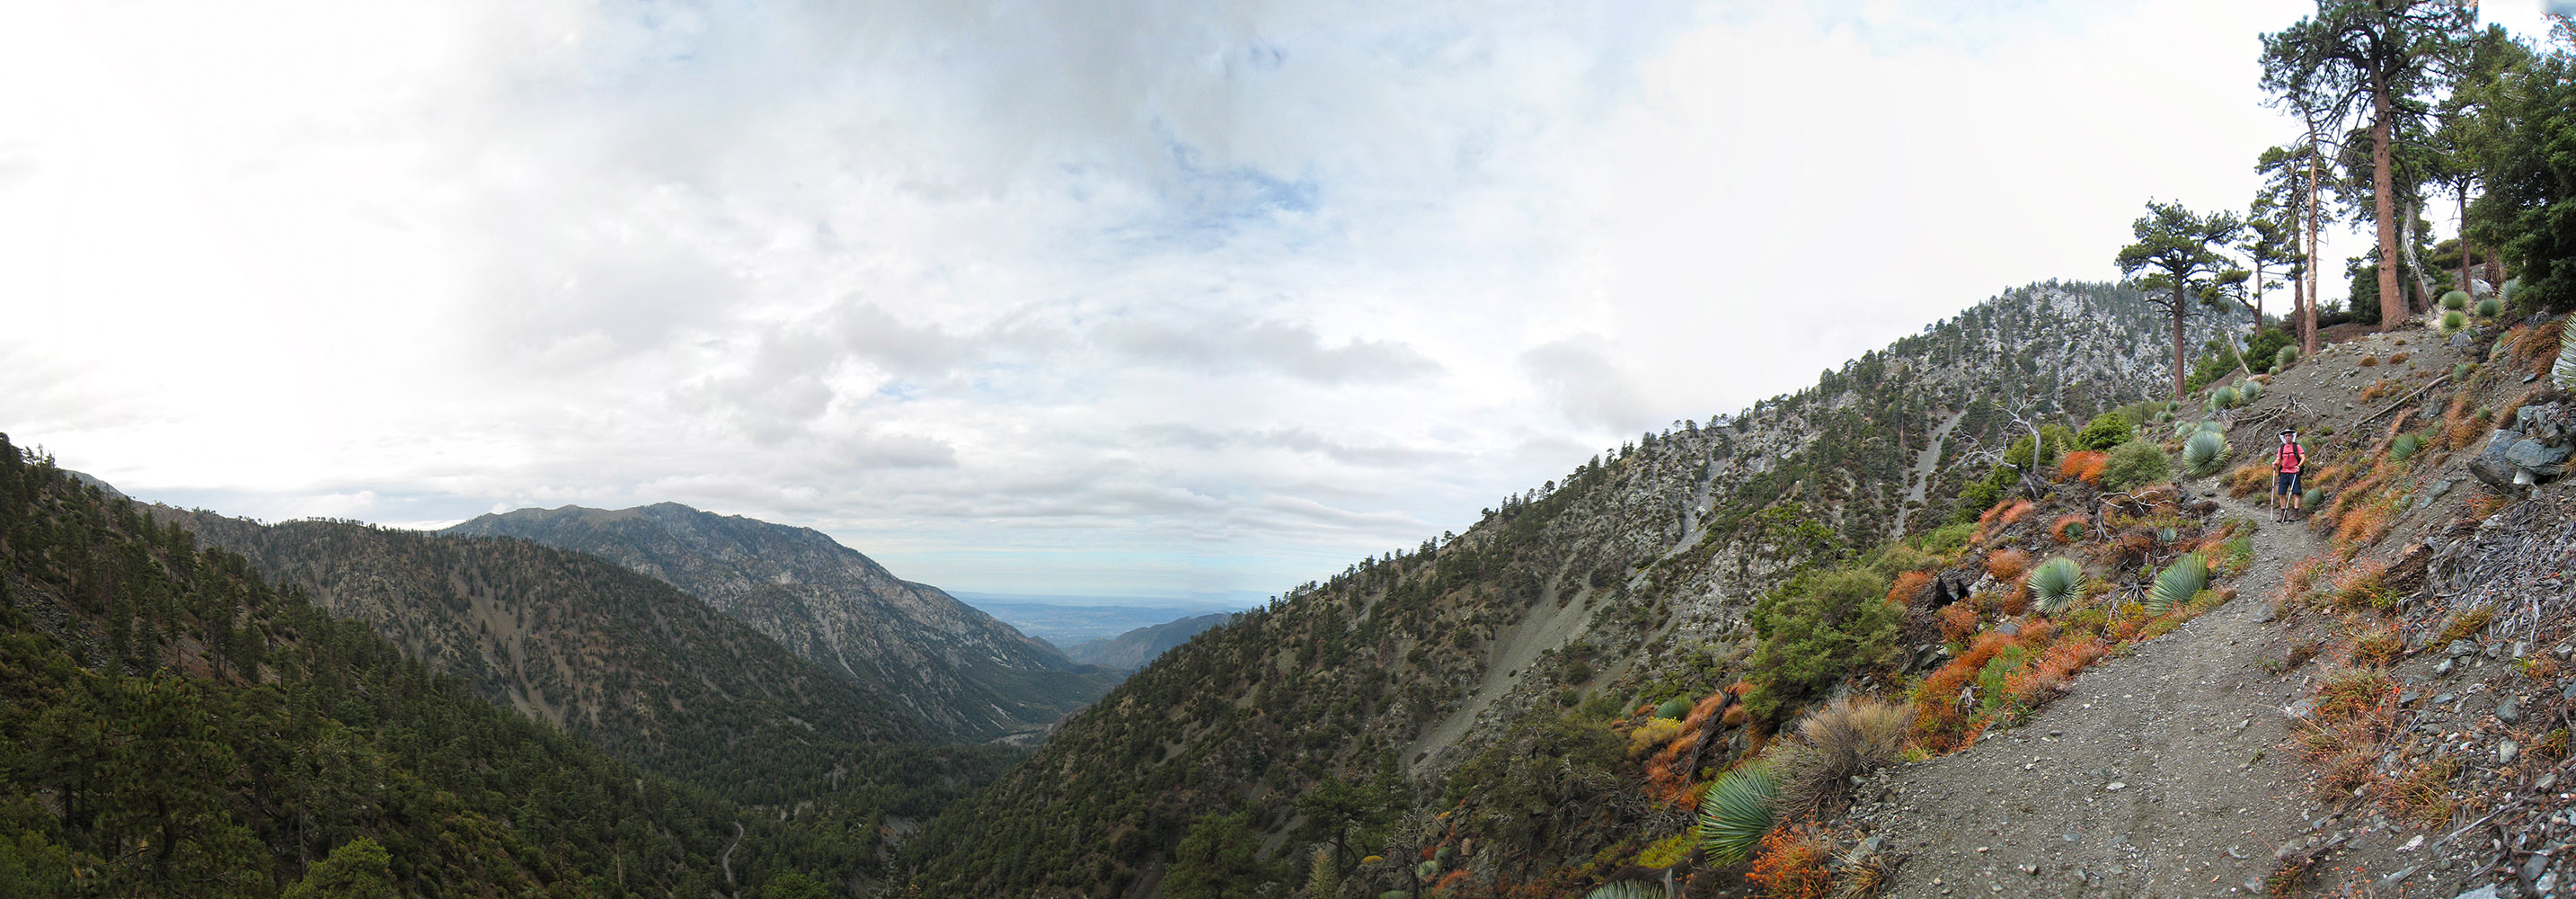 Mt Baldy Hiking Loop